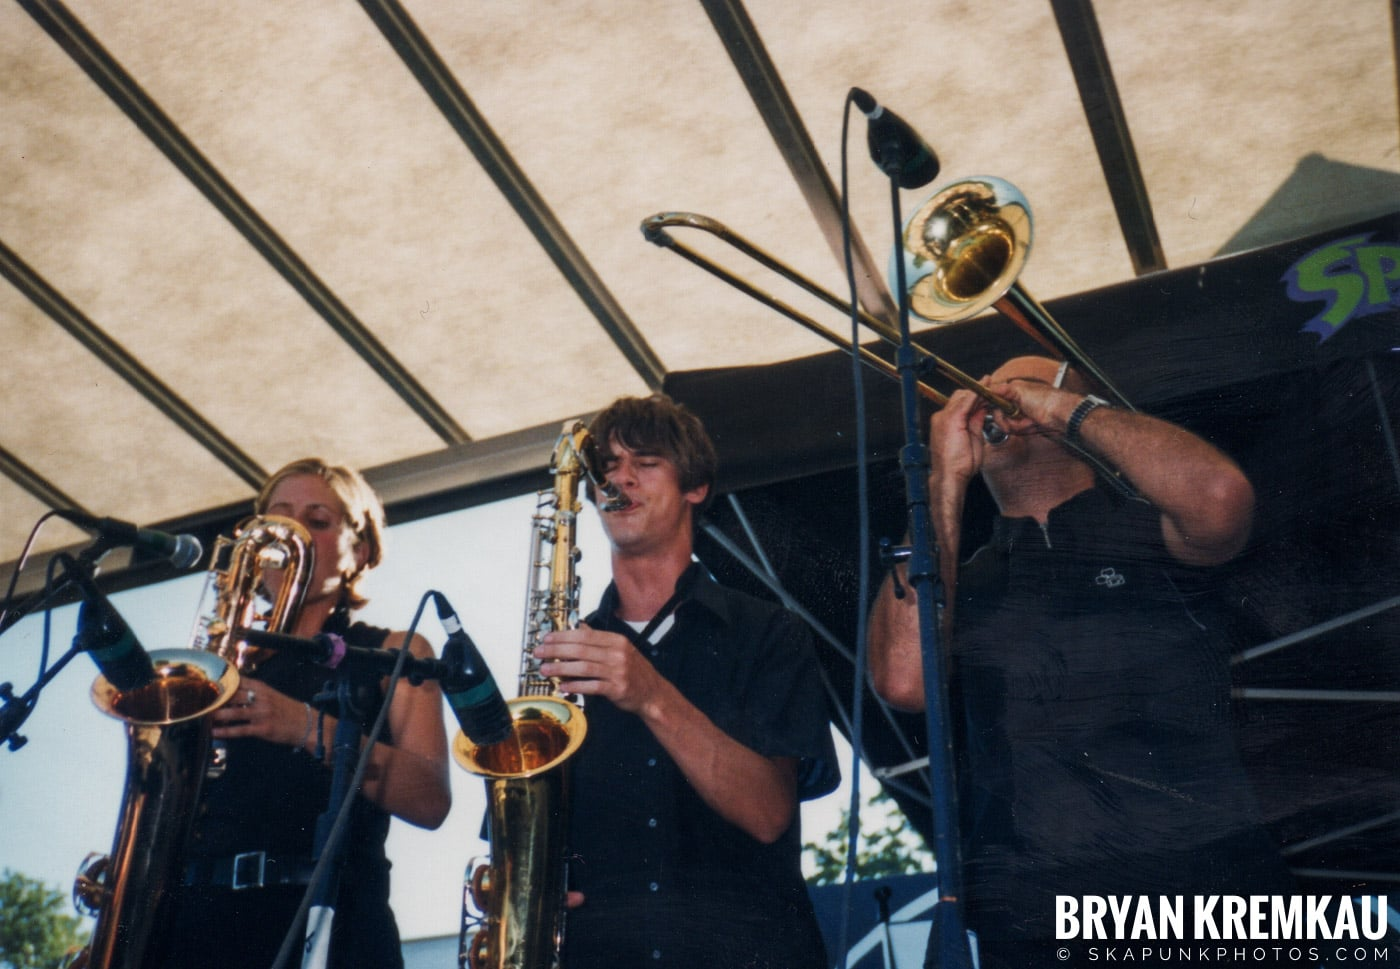 The Smooths @ Vans Warped Tour, Randall's Island, NYC - 8.1.98 (8)